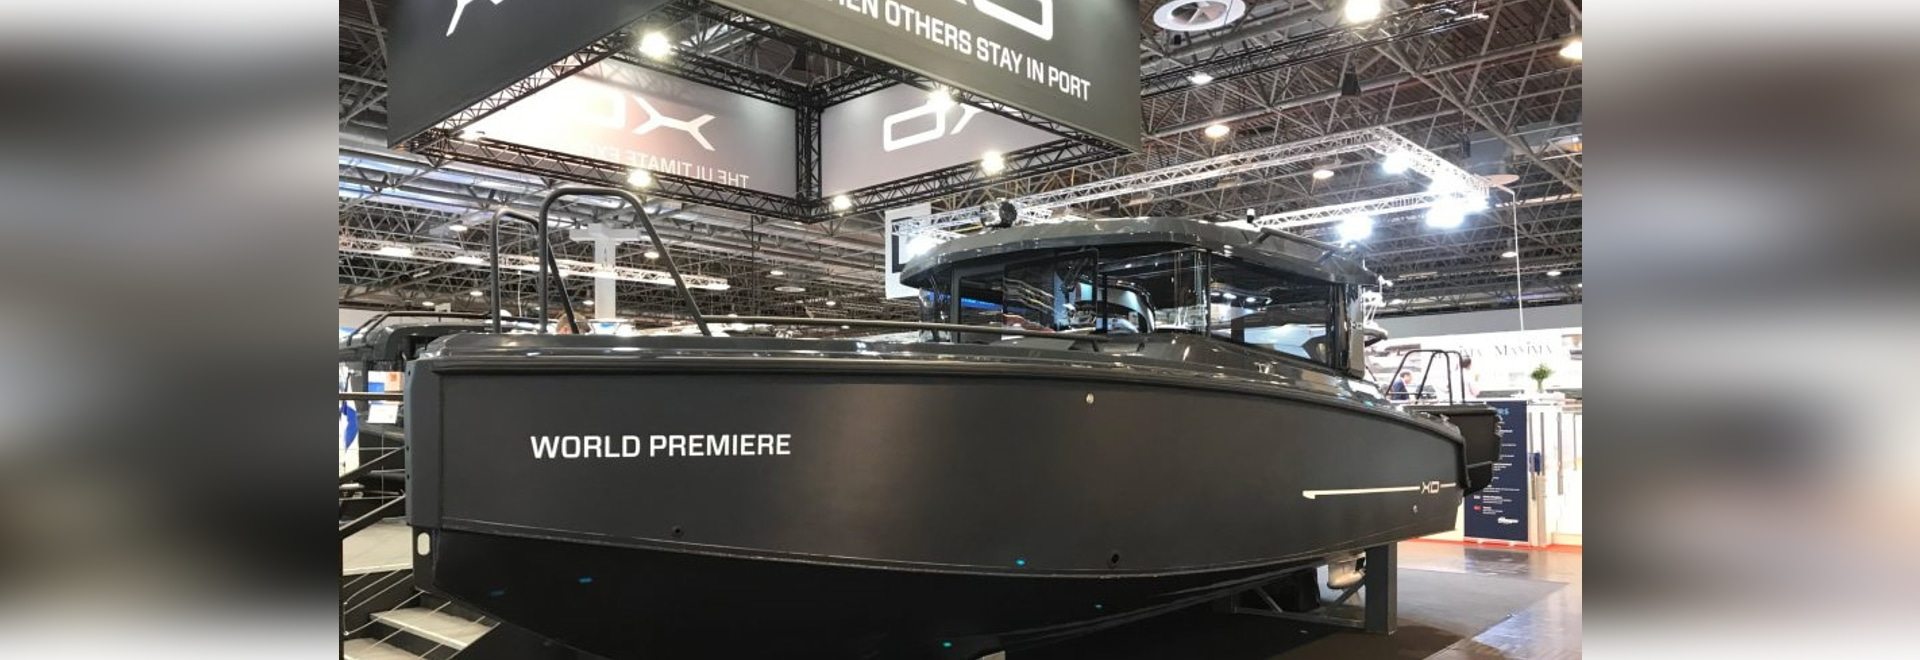 Deep-vee aluminium hull delivers strong performance in a robust, all-weather package